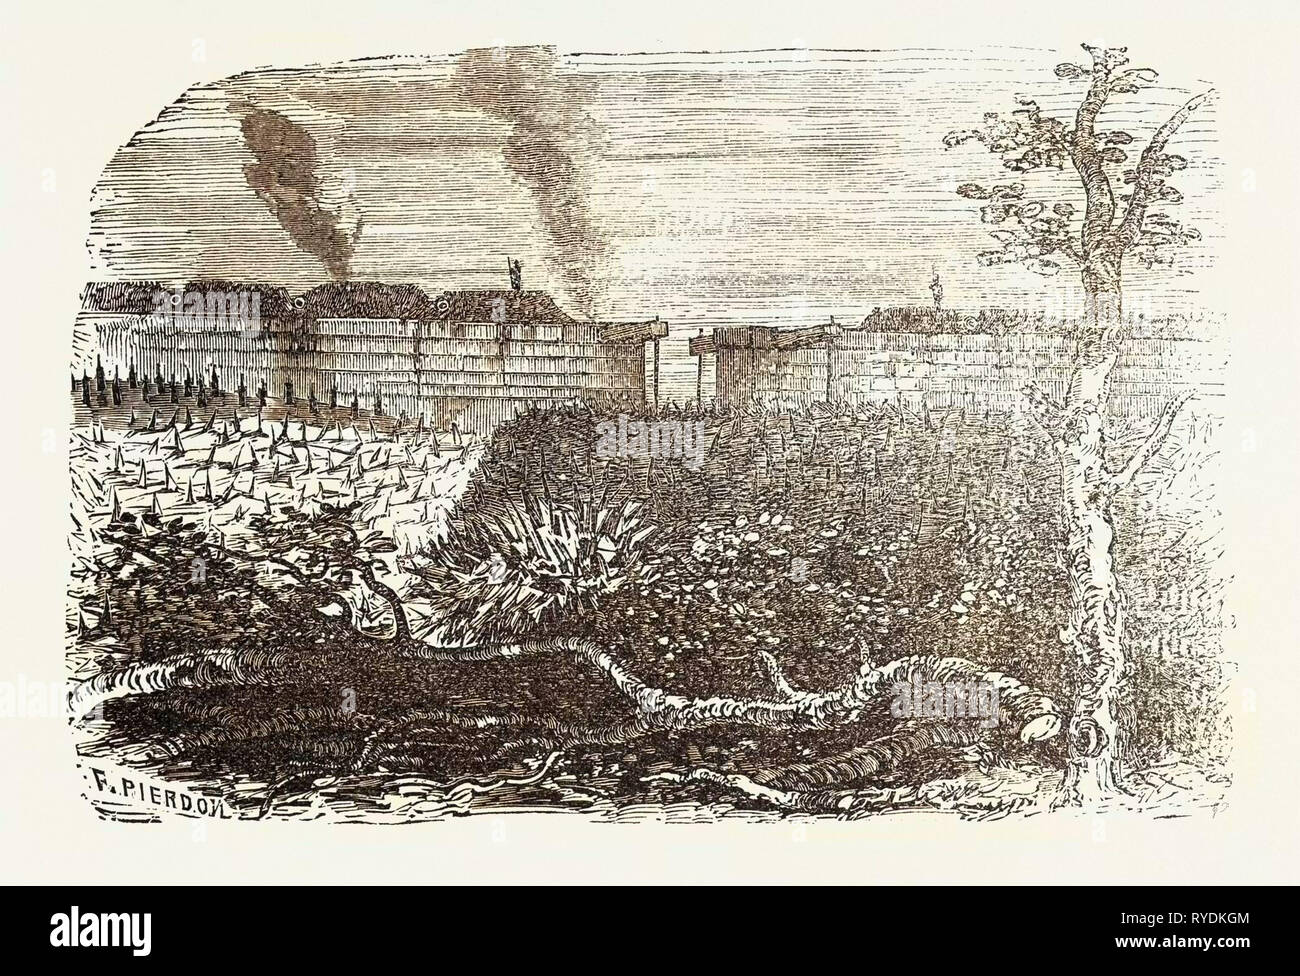 Franco-Prussian War: Obstruction of Individual Gates of the City Walls by Futzangeln, Barbed Wire and Barricades - Stock Image